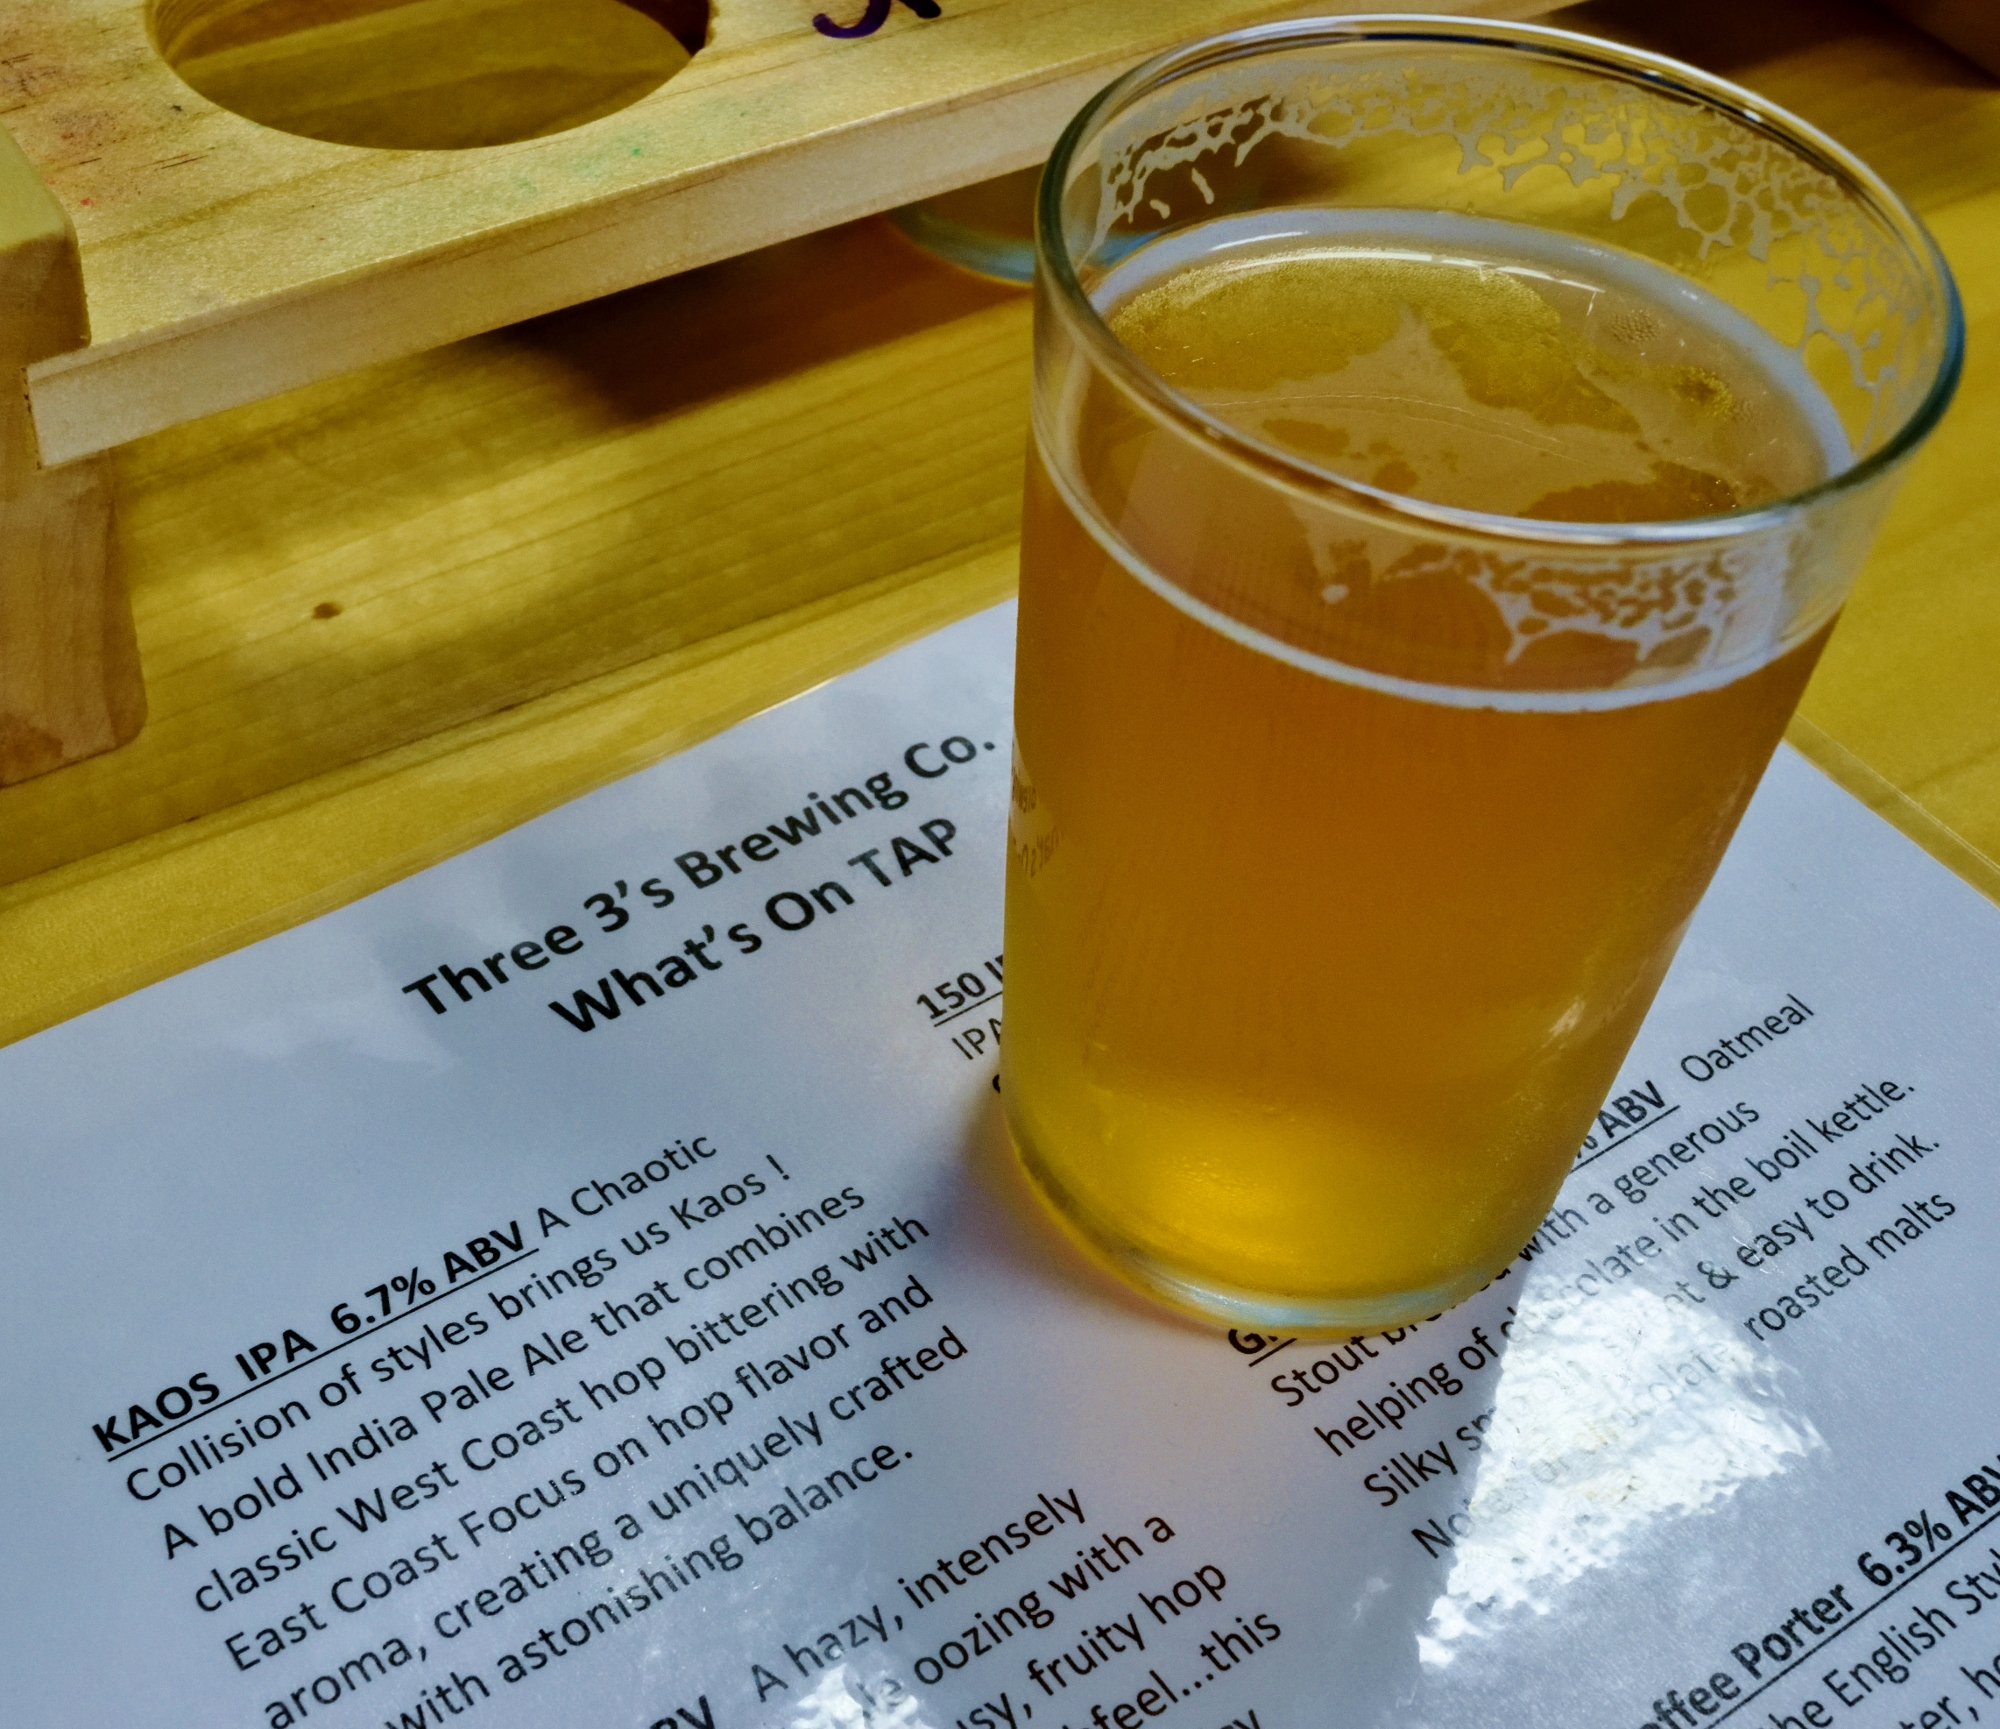 This is the real gem of the day - Kaos IPA. So good we took a growler home.